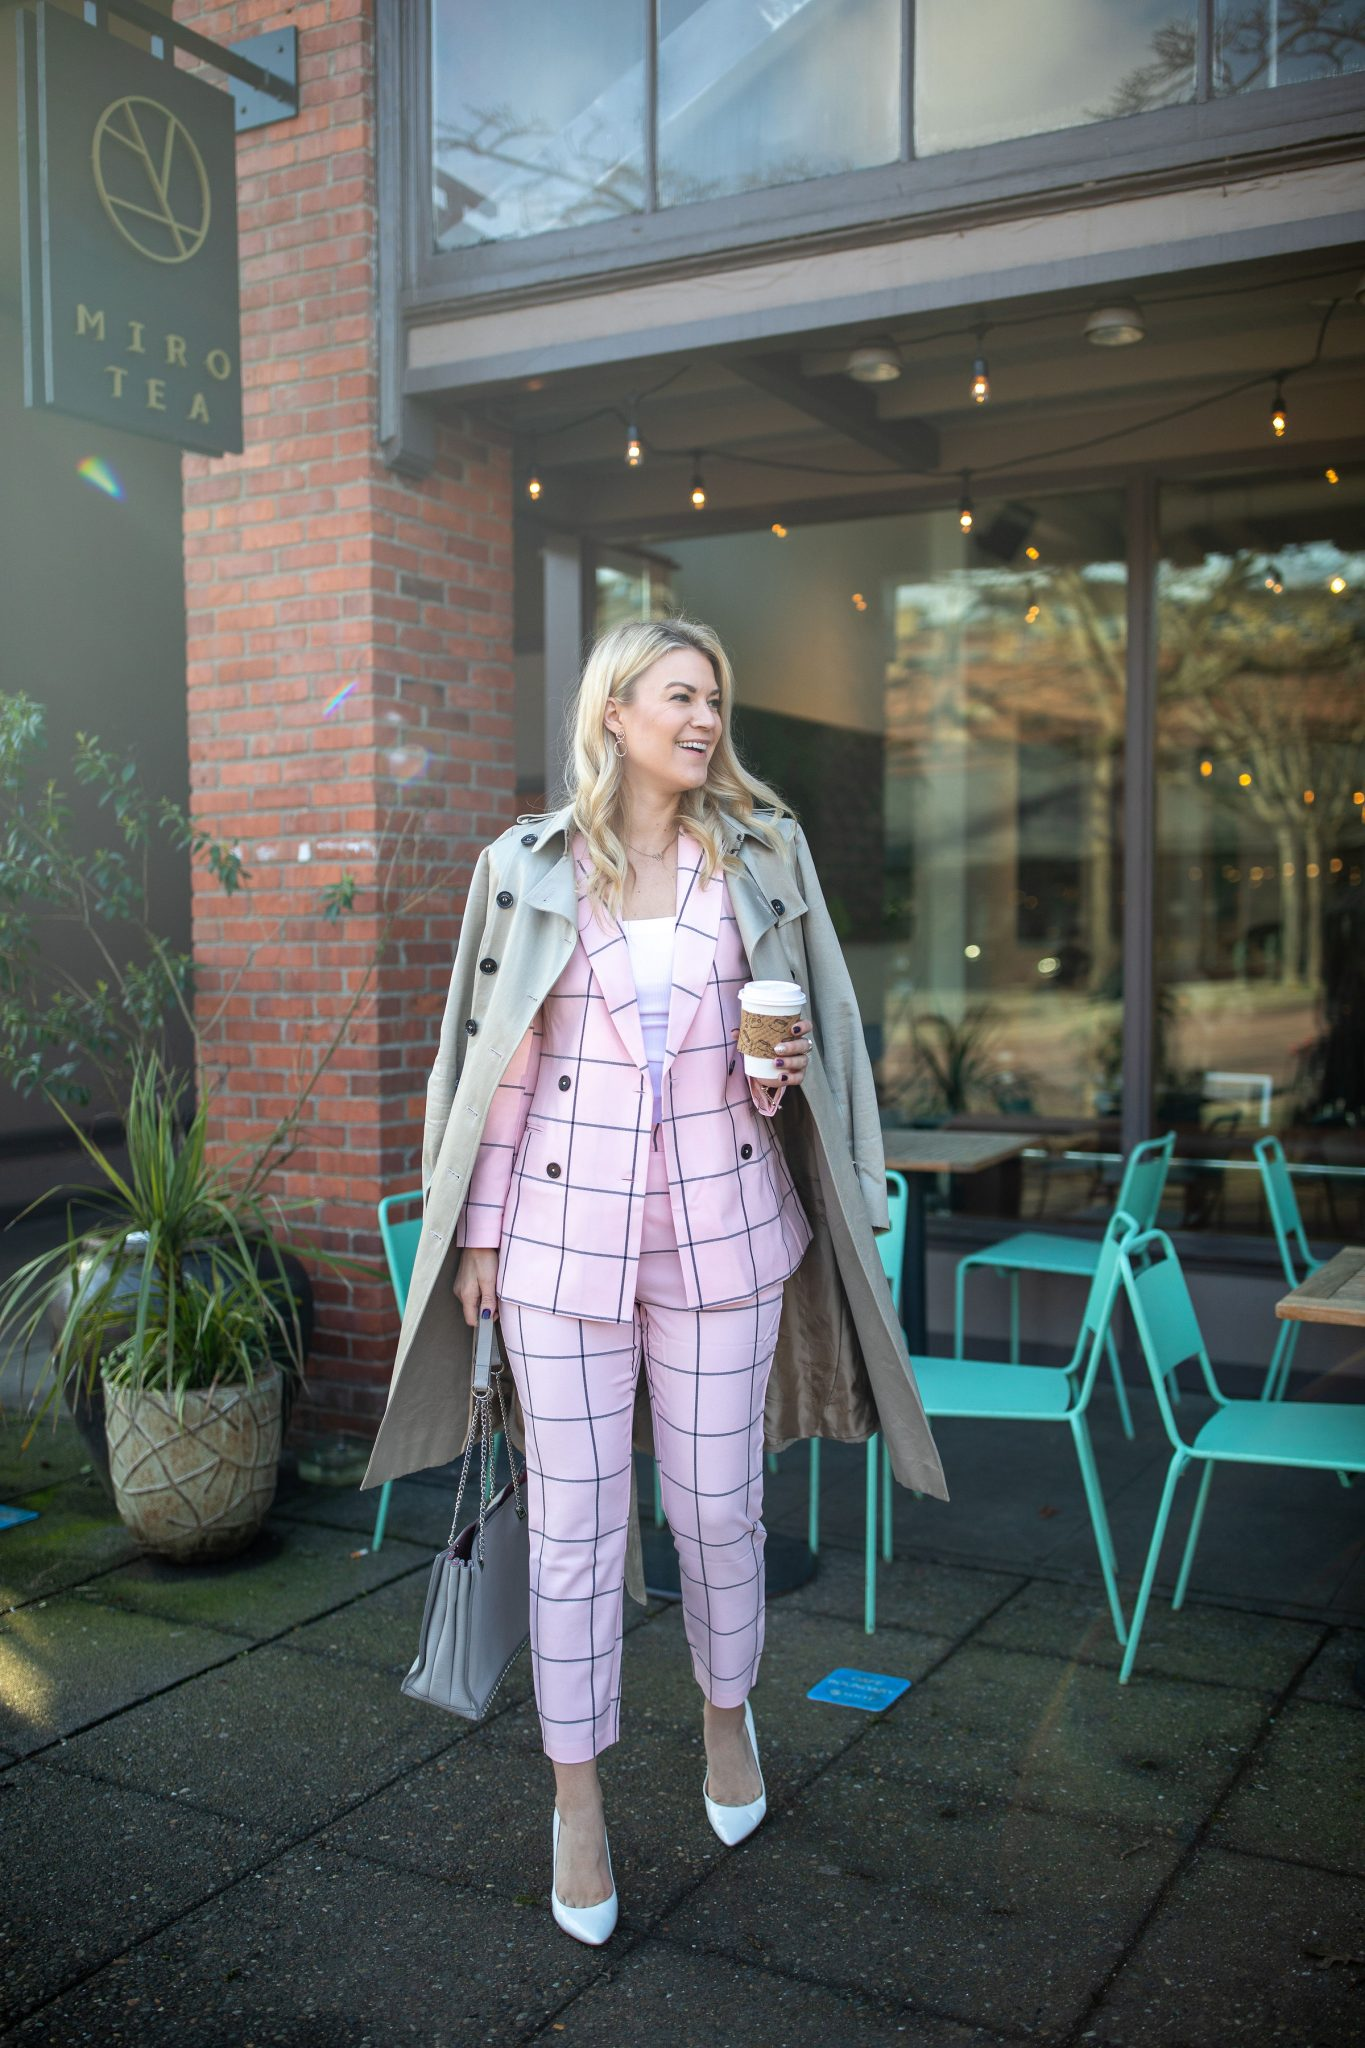 ASOS Pink Suit styled for work by top Seattle tall fashion blogger, Whit Wanders: image of a woman standing in front of a coffee shop and wearing a Burberry Trench Coat, ASOS Grid Suit, Sam Edelman Heels, and holding a Zara Purse.